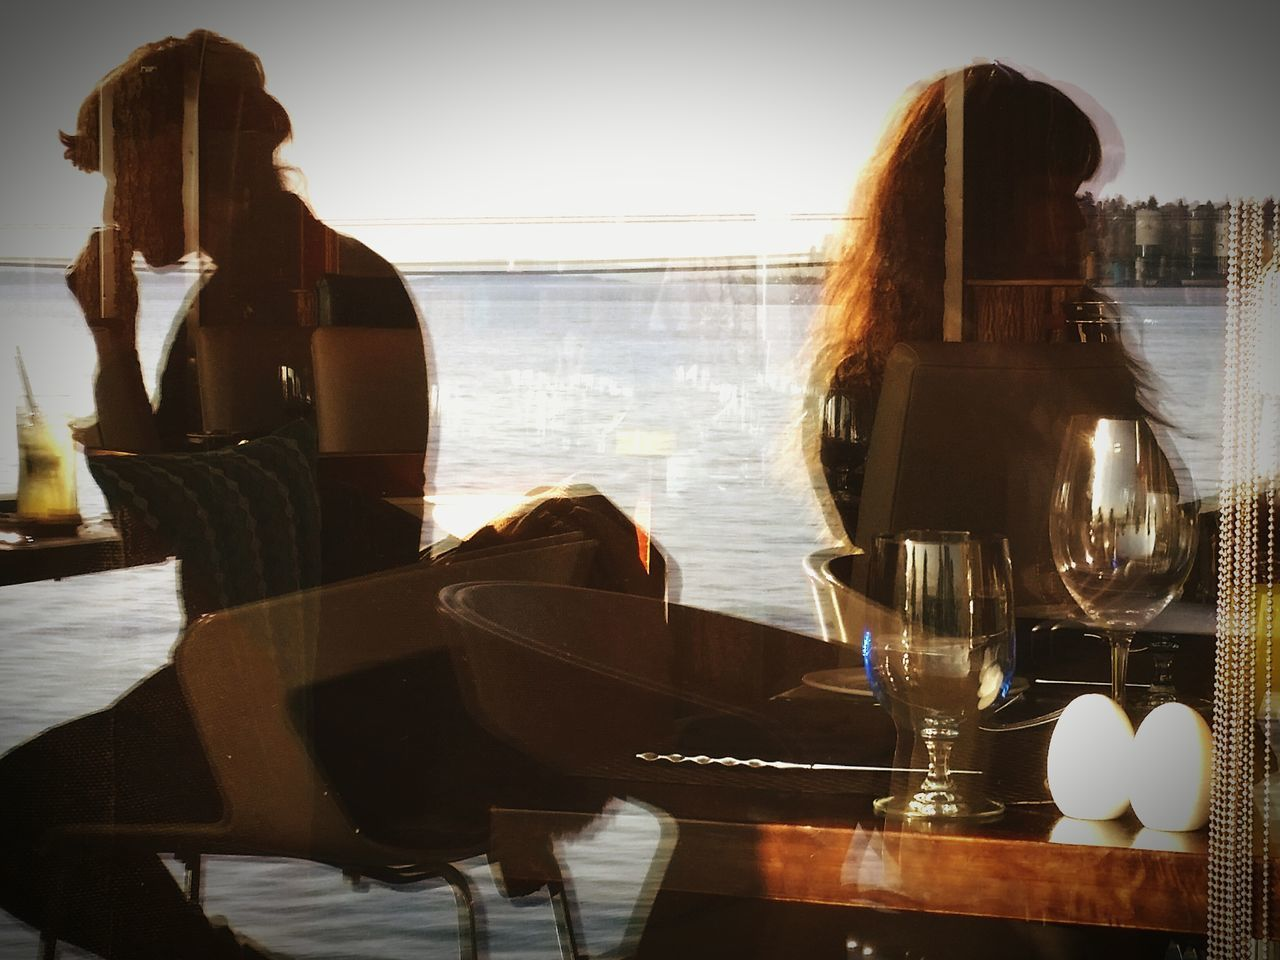 indoors, table, real people, women, one person, food and drink, water, lifestyles, sea, wine, sitting, wineglass, men, day, sky, people